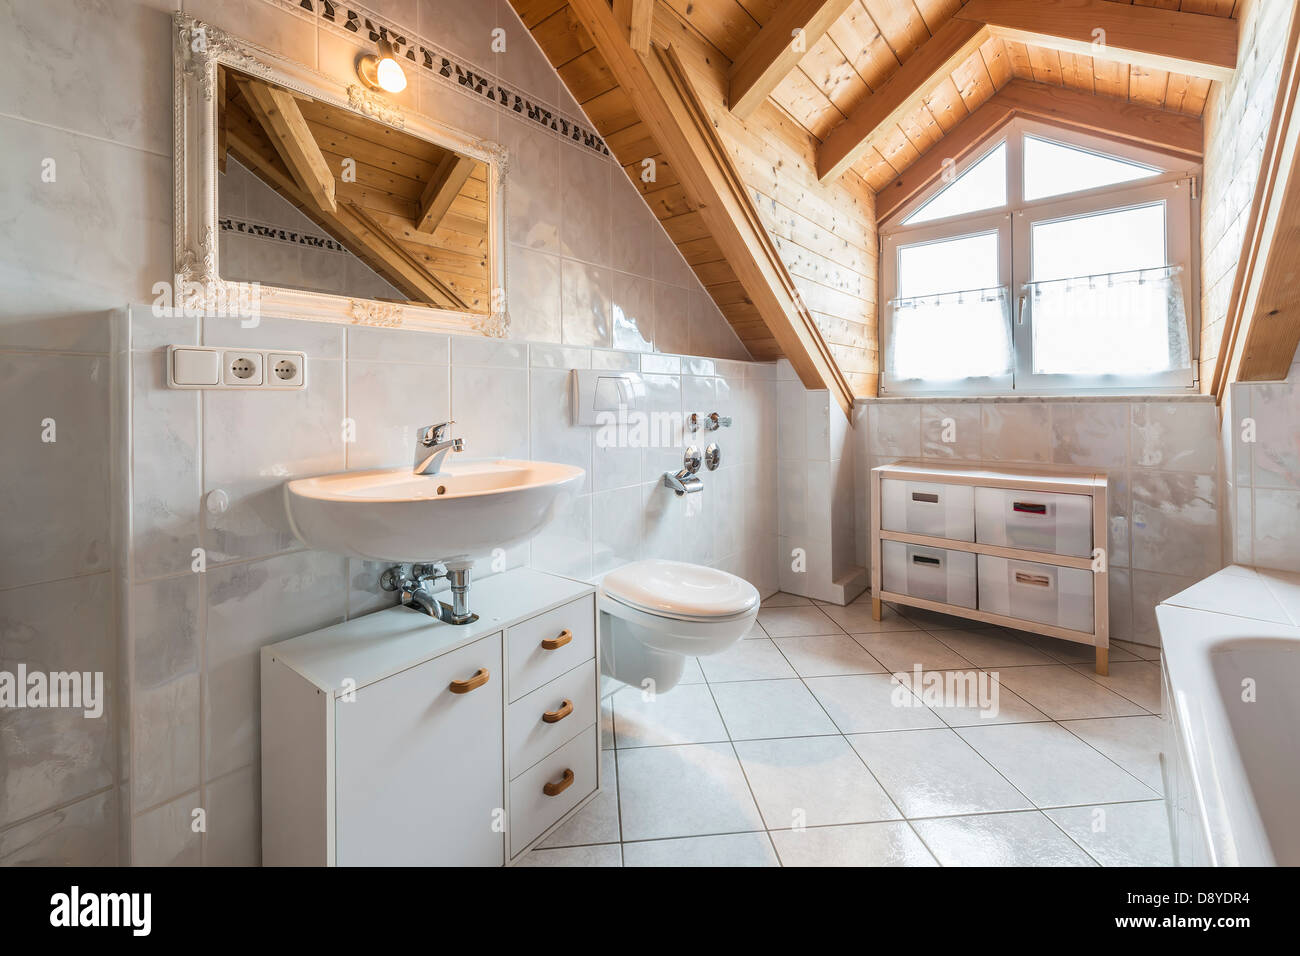 bathroom of a flat in attic with basin, mirror, light, window, toilet, bathtub, cabinets and wooden ceiling - Stock Image